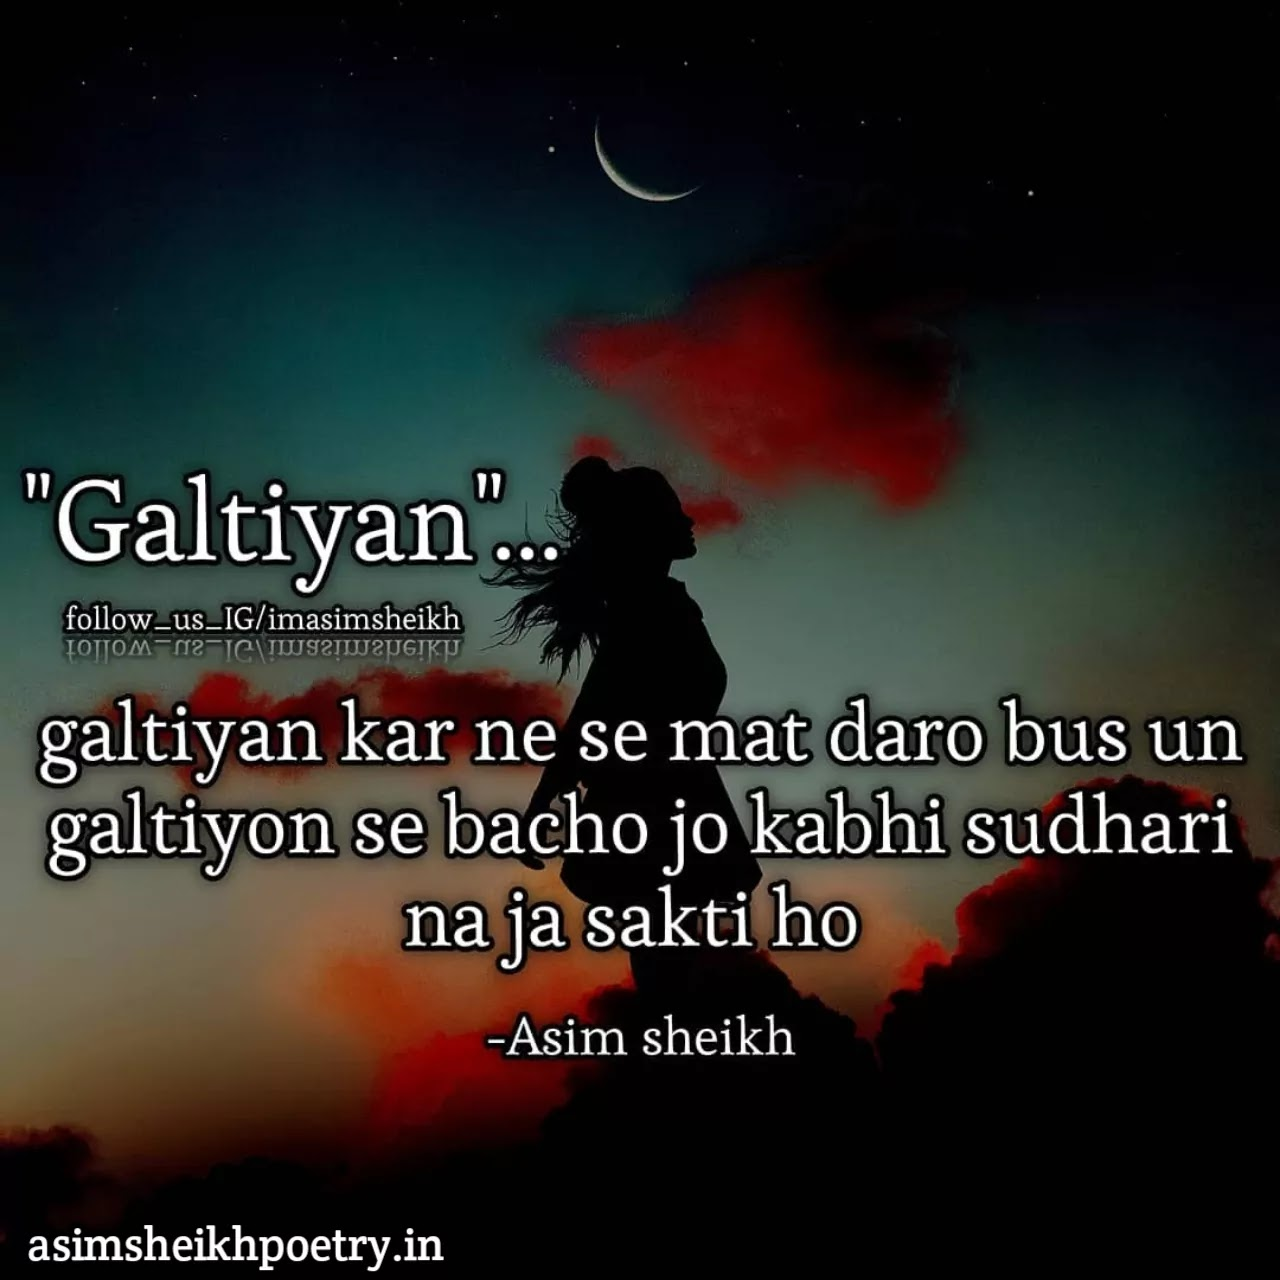 Hindi Positive Quotes - asimsheikhpoetry.in